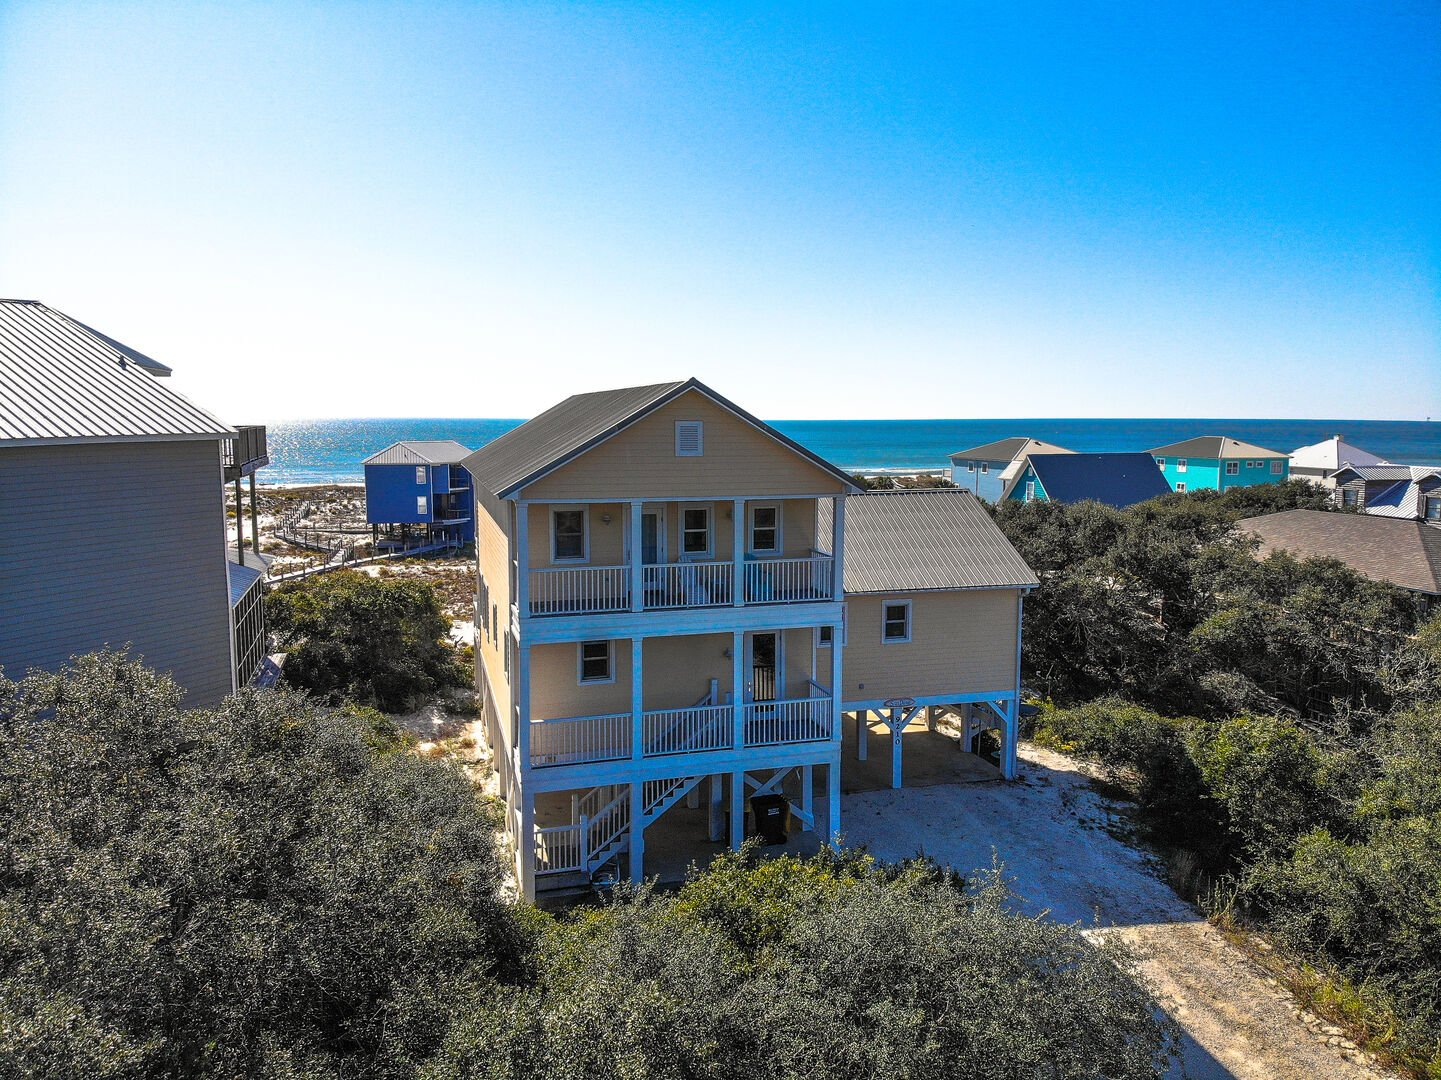 An Image of Pet Friendly Gulf Shores Vacation Rental.